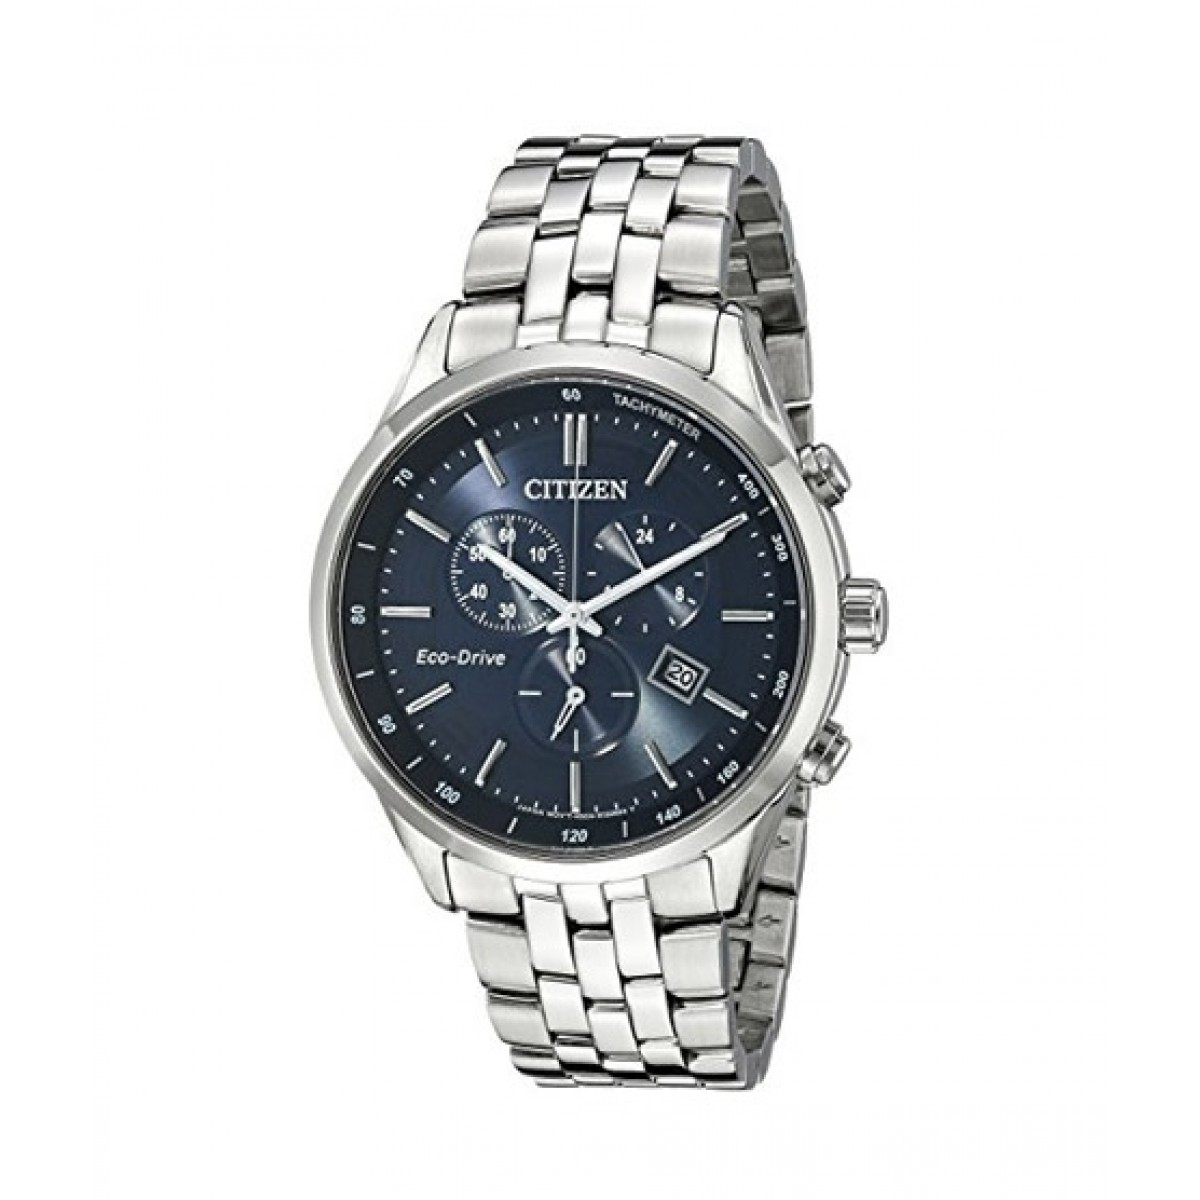 Citizen Eco-Drive Men's Watch Price in Pakistan | Buy Citizen Eco-Drive  Men's Watch Silver (AT2141-52L) | iShopping.pk